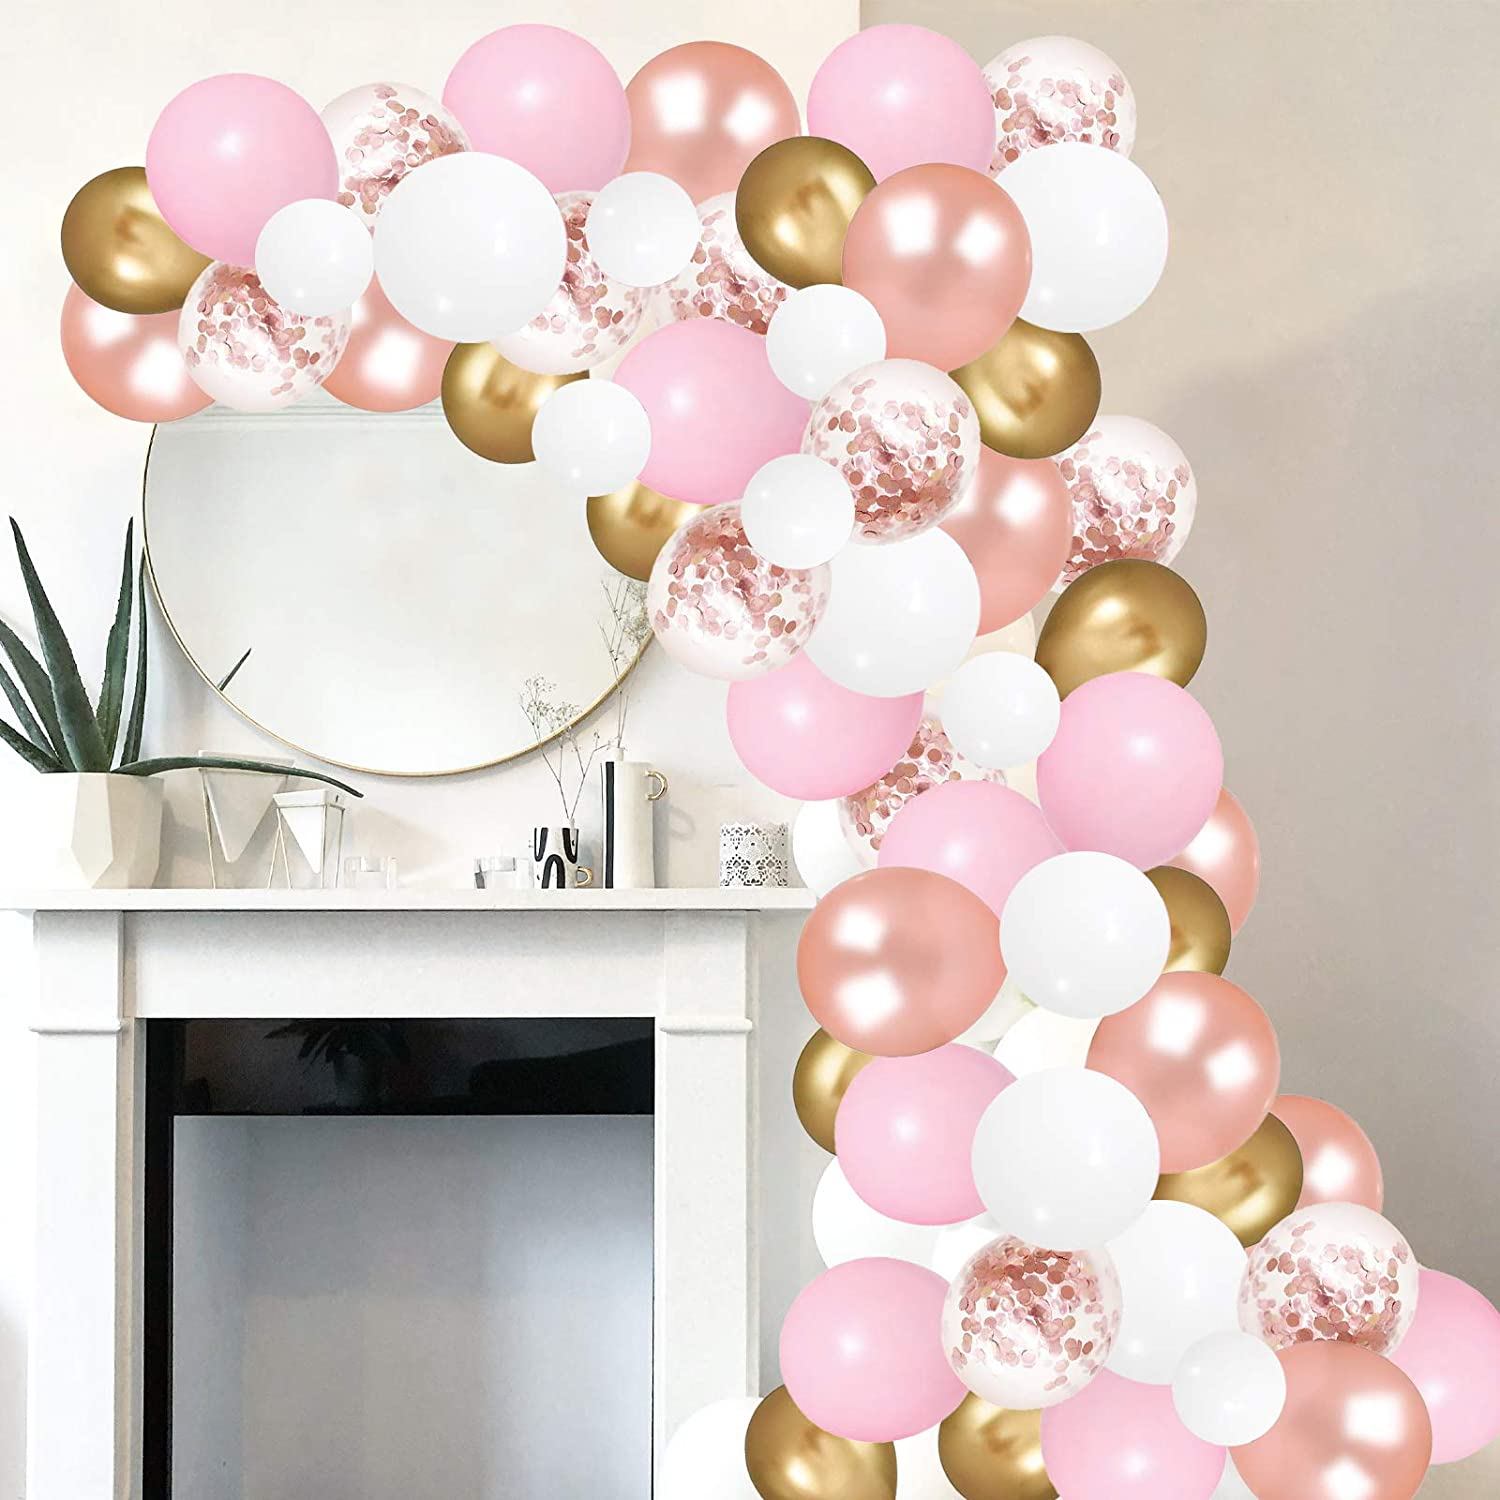 Rose Gold Pink Balloon Garland Kit,100 Pack White and Rose Gold Confetti Latex Balloons with Strip Tape and Dot Glue for Wedding Birthday Party Decorations